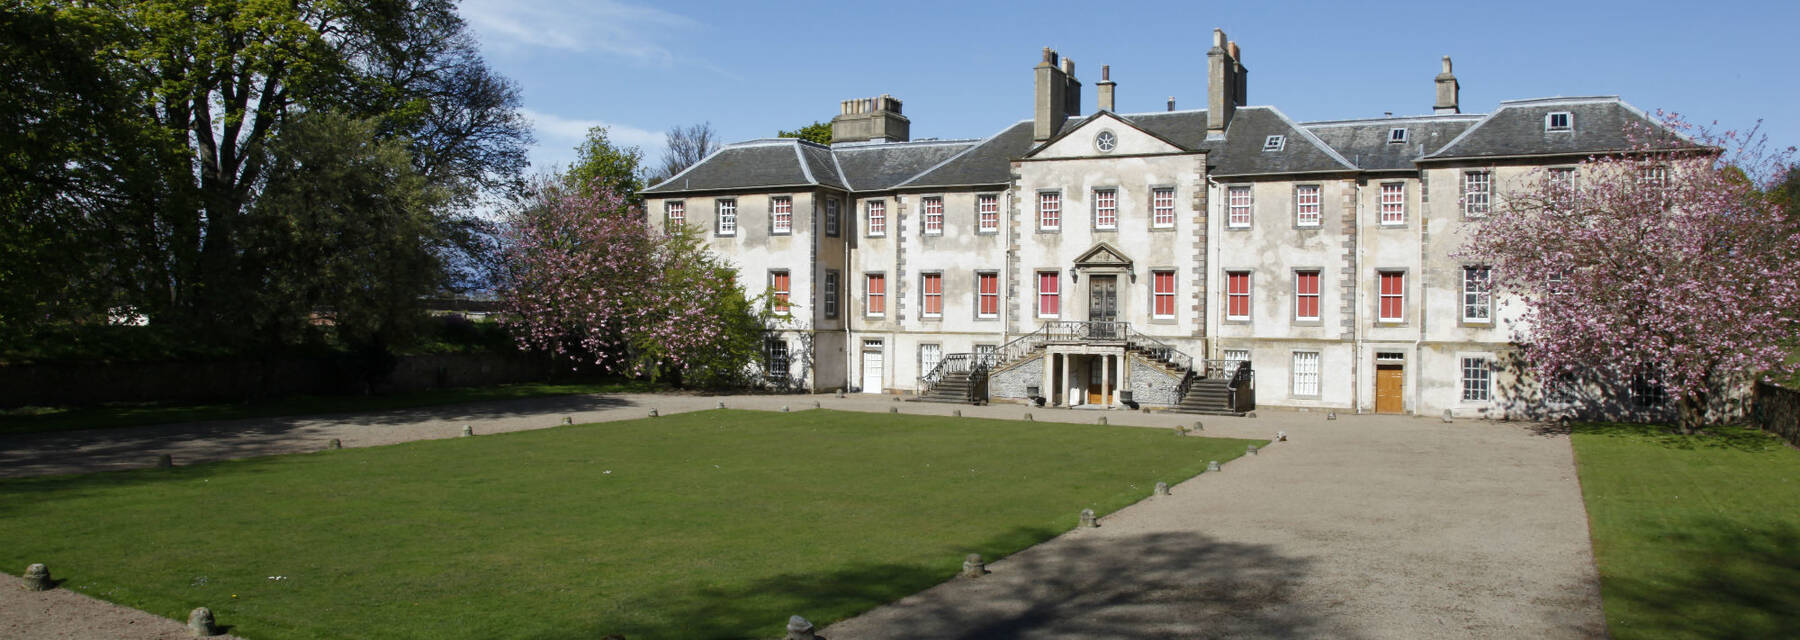 Newhailes House, seen from the end of the driveway on a sunny day